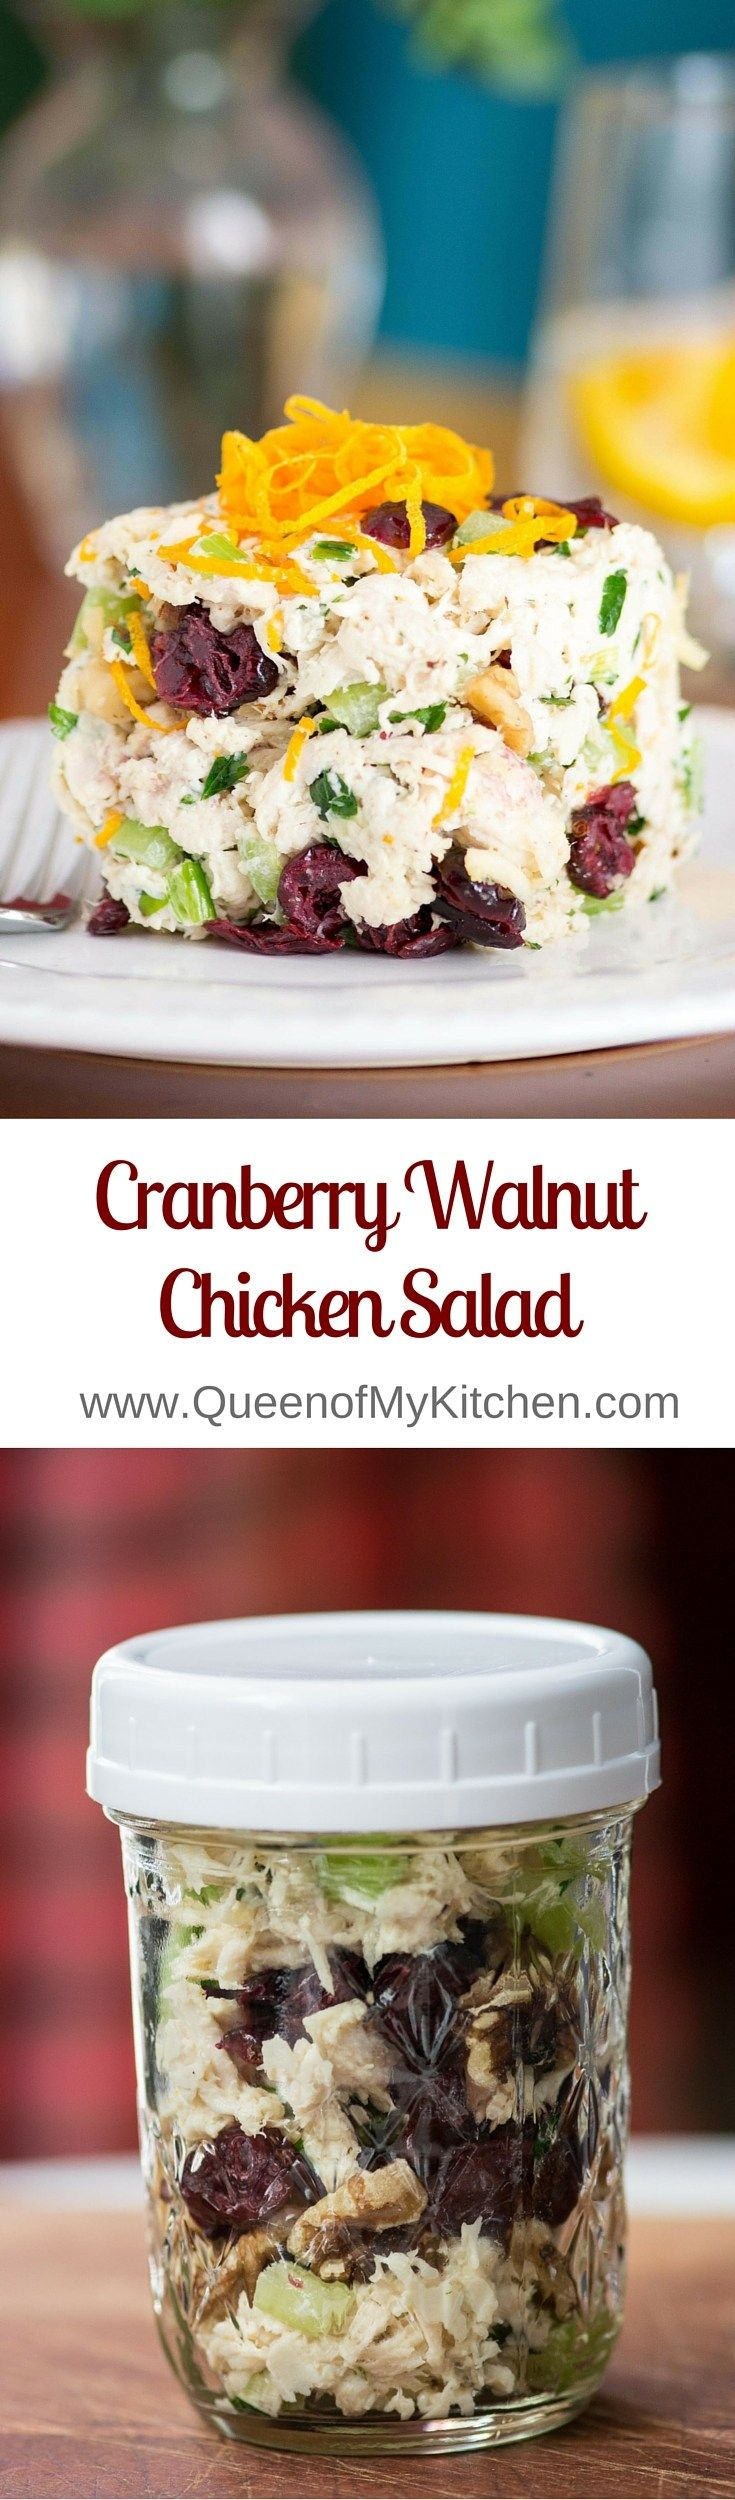 Cranberry Walnut Chicken Salad is classic chicken salad made with avocado mayonnaise and dotted with cranberries, walnuts, and a hint of orange zest. The cleanest, freshest tasting chicken salad ever!   QueenofMyKitchen.com